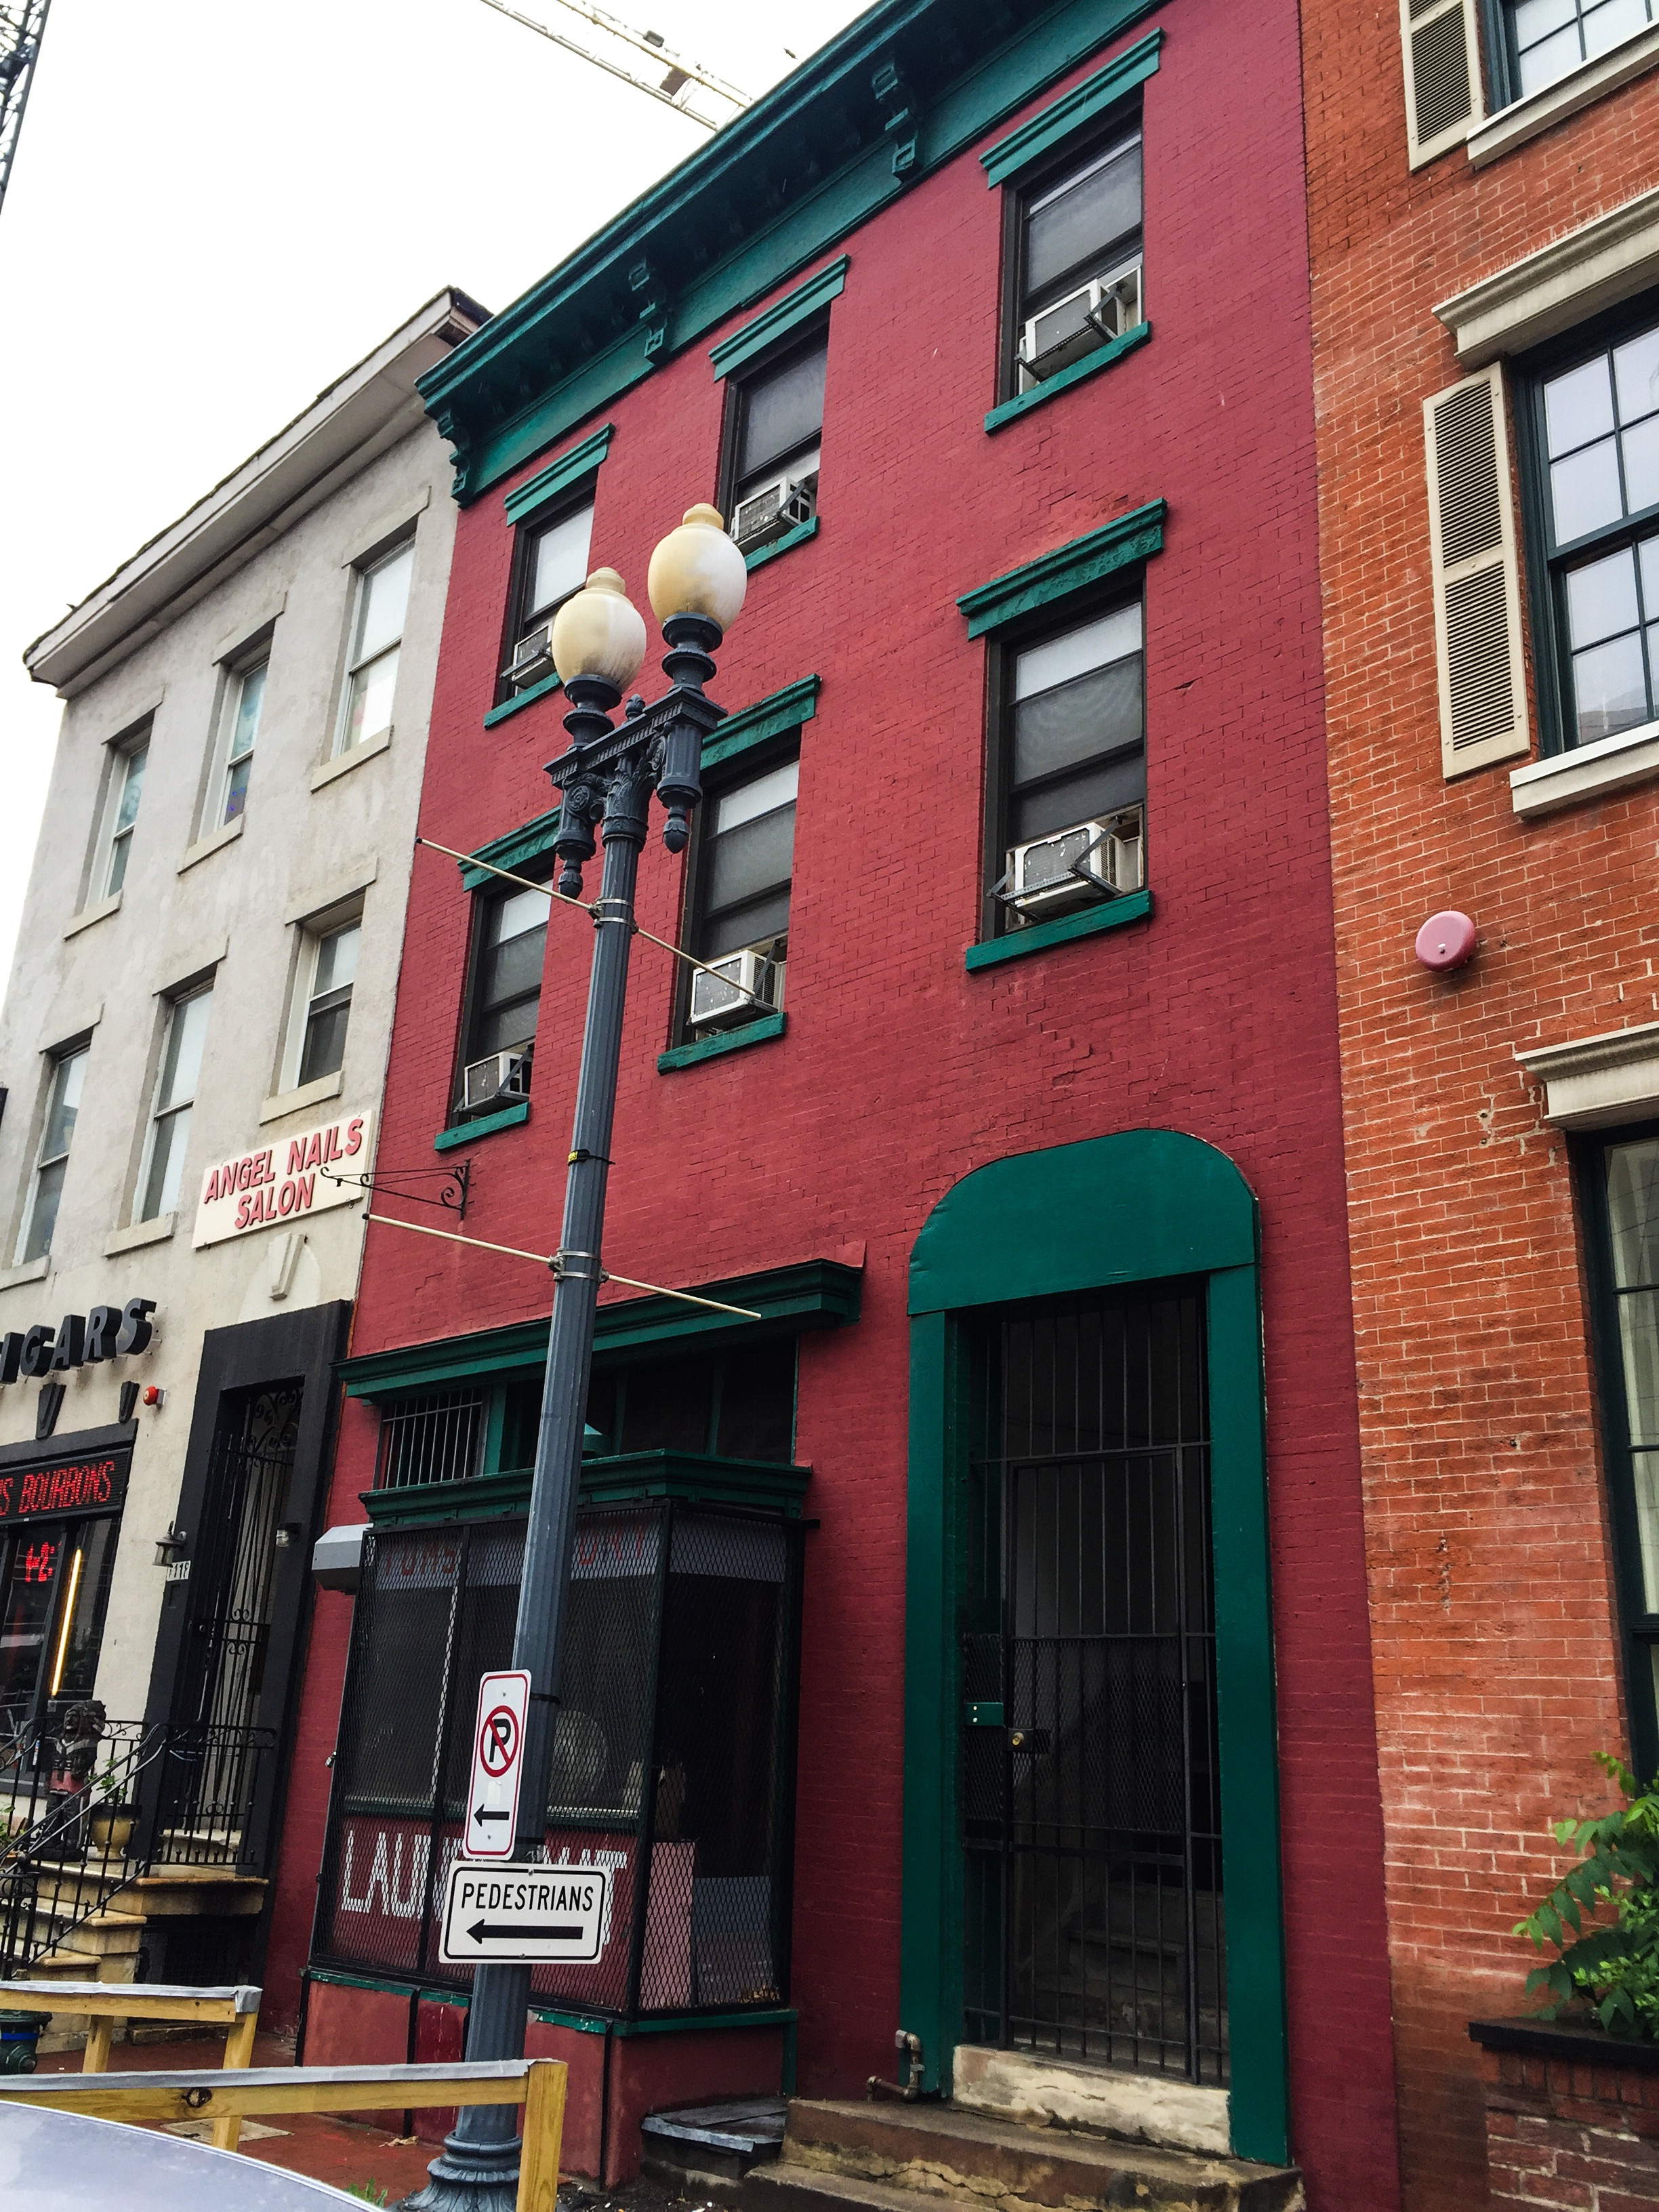 1120 9th St. NW: $4,000,000